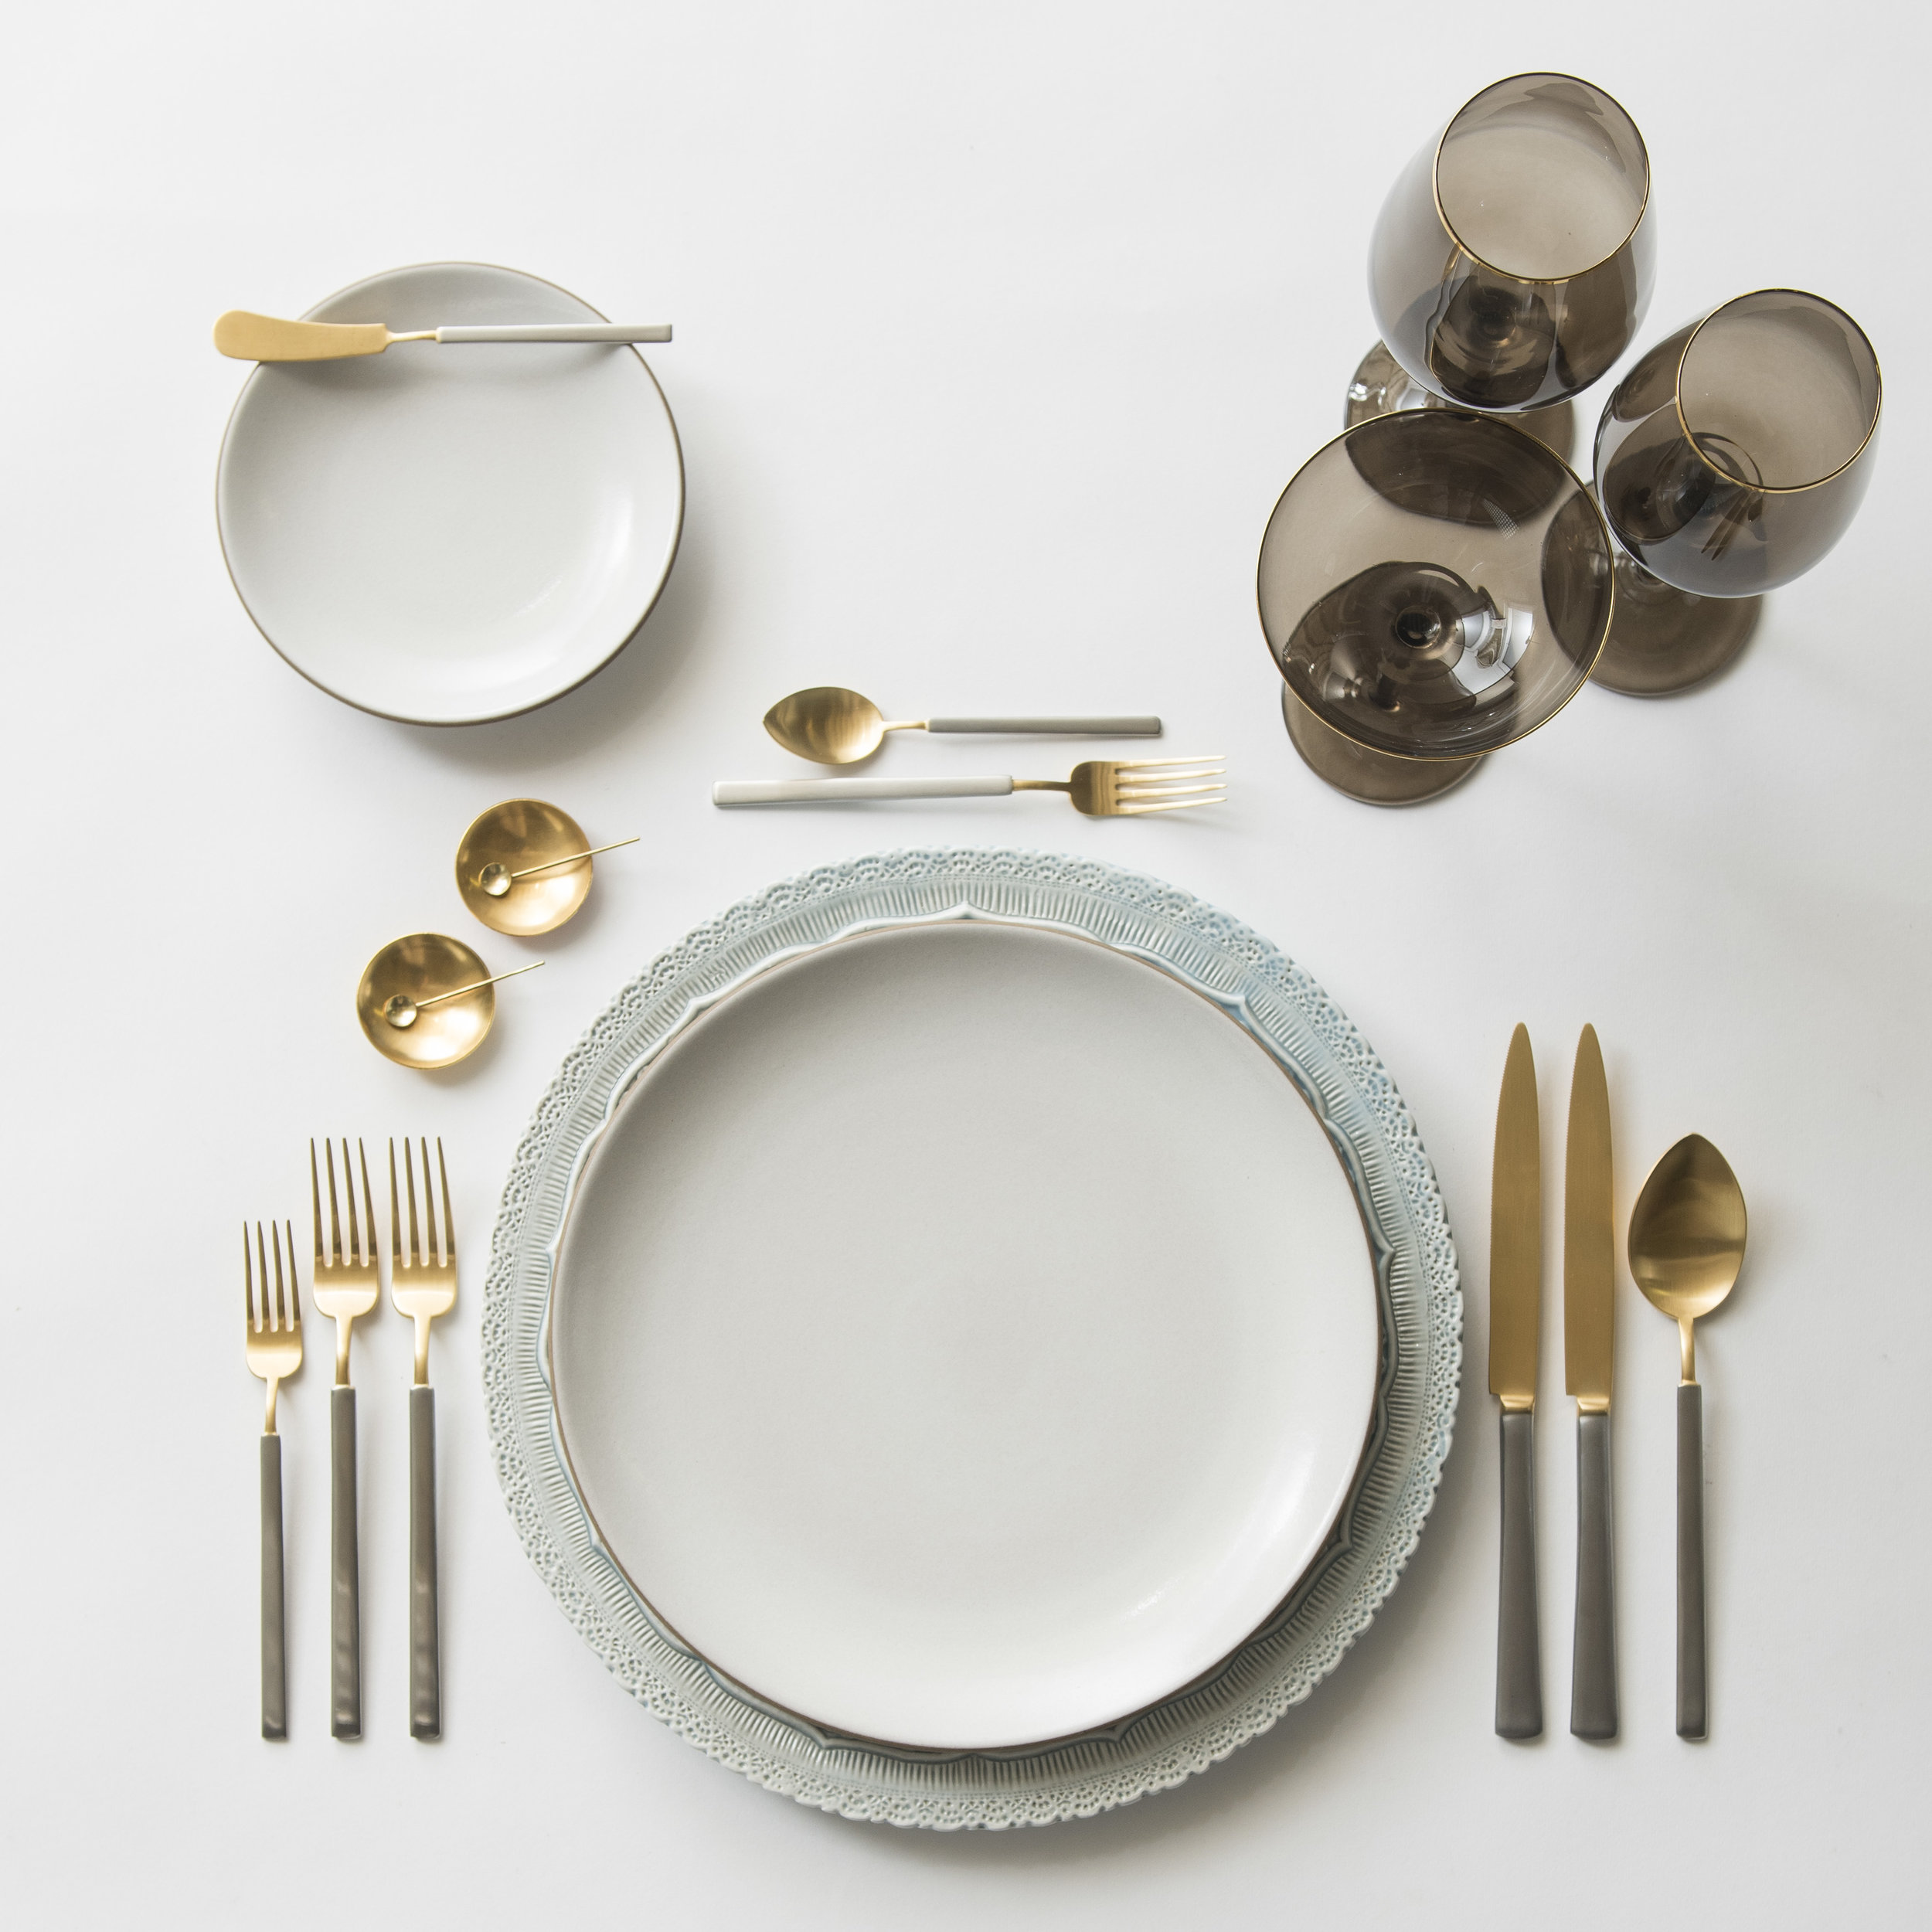 RENT: Lace Chargers in Dusty Blue + Heath Ceramics in Opaque White + Axel Flatware in Matte 24k Gold/Silver + Bella 24k Gold Rimmed Stemware in Smoke + 14k Gold Salt Cellars + Tiny Gold Spoons   SHOP:  Bella 24k Gold Rimmed Stemware in Smoke + 14k Gold Salt Cellars + Tiny Gold Spoons